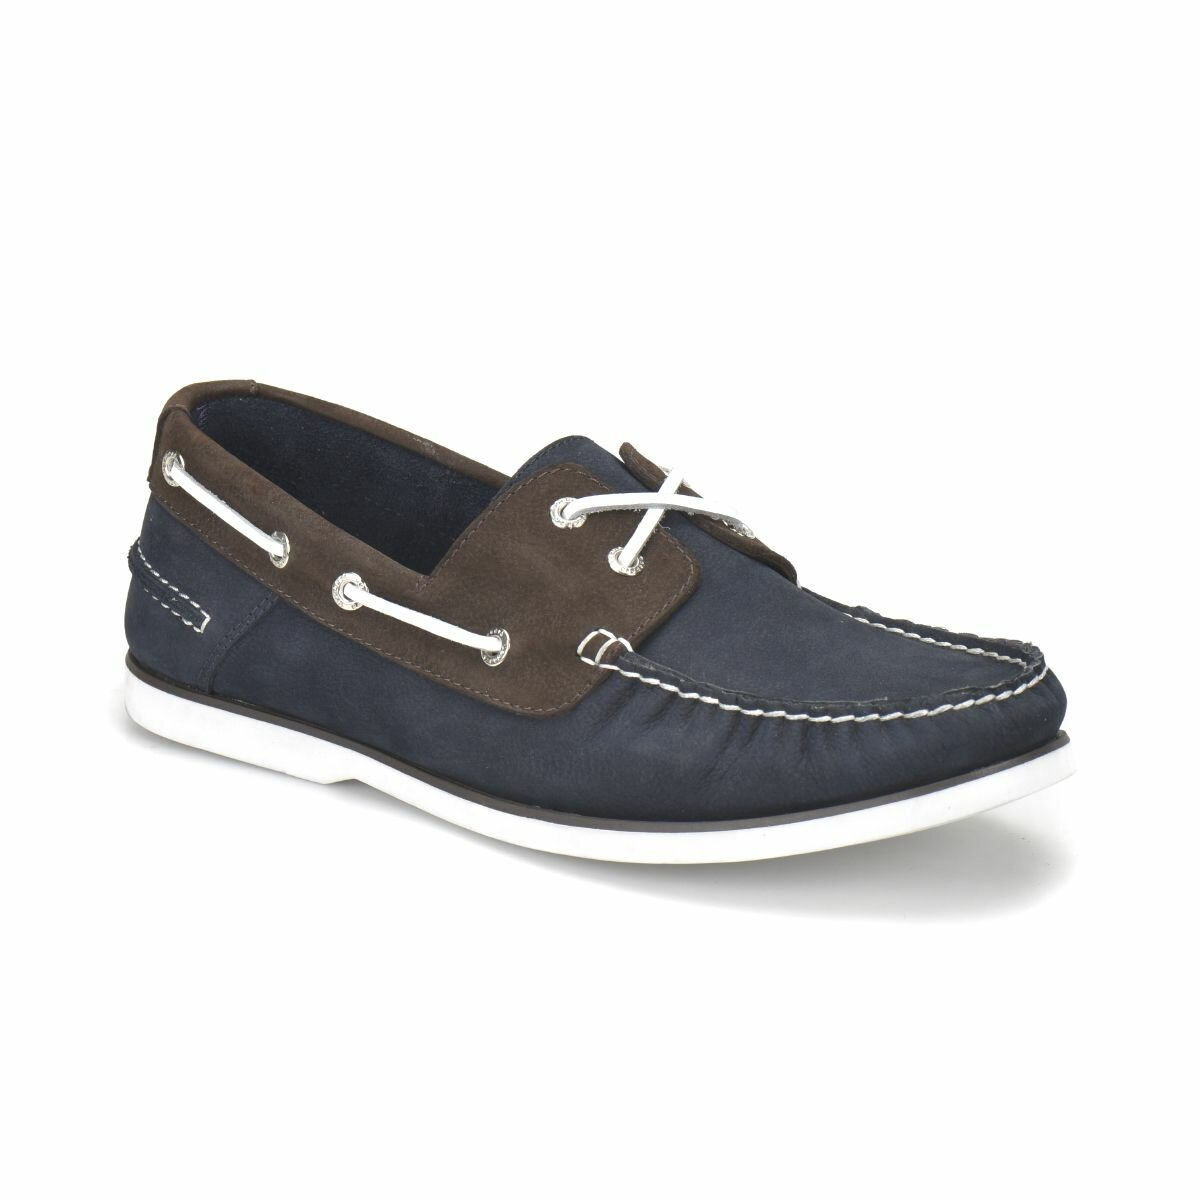 FLO 71151-1 Black Male Shoes Oxide